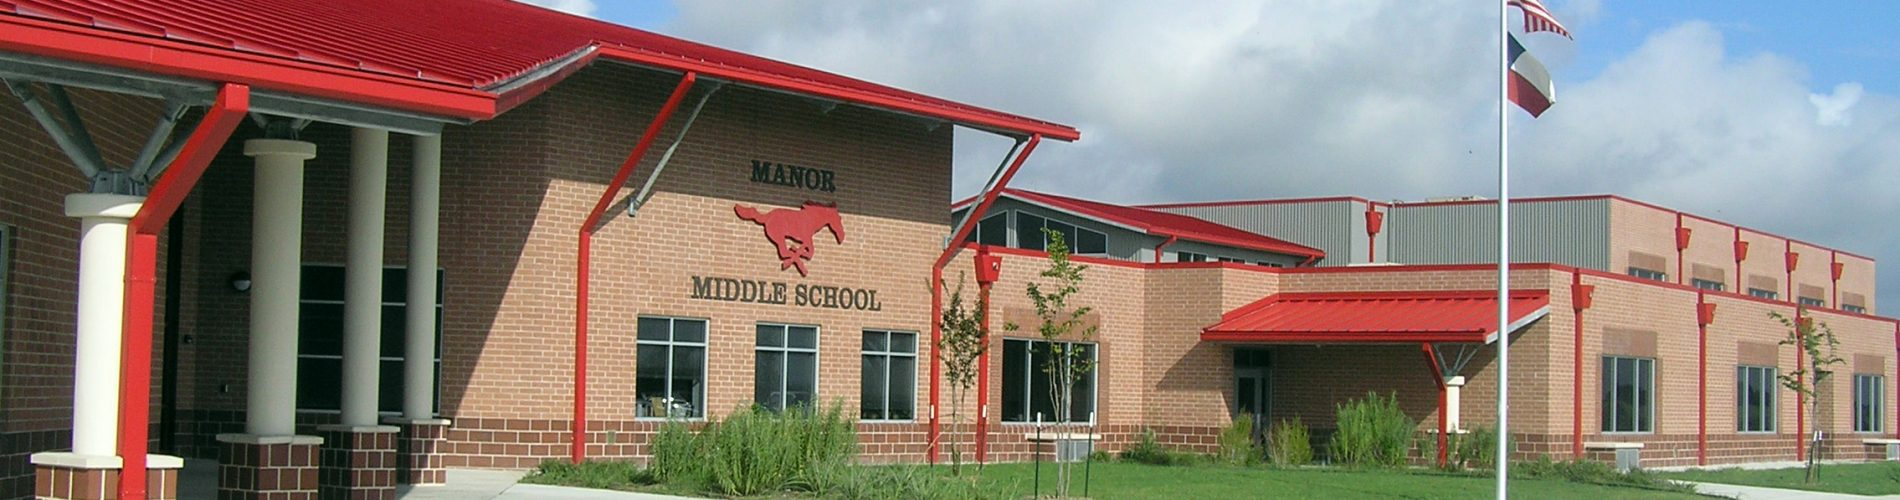 Manor Middle School